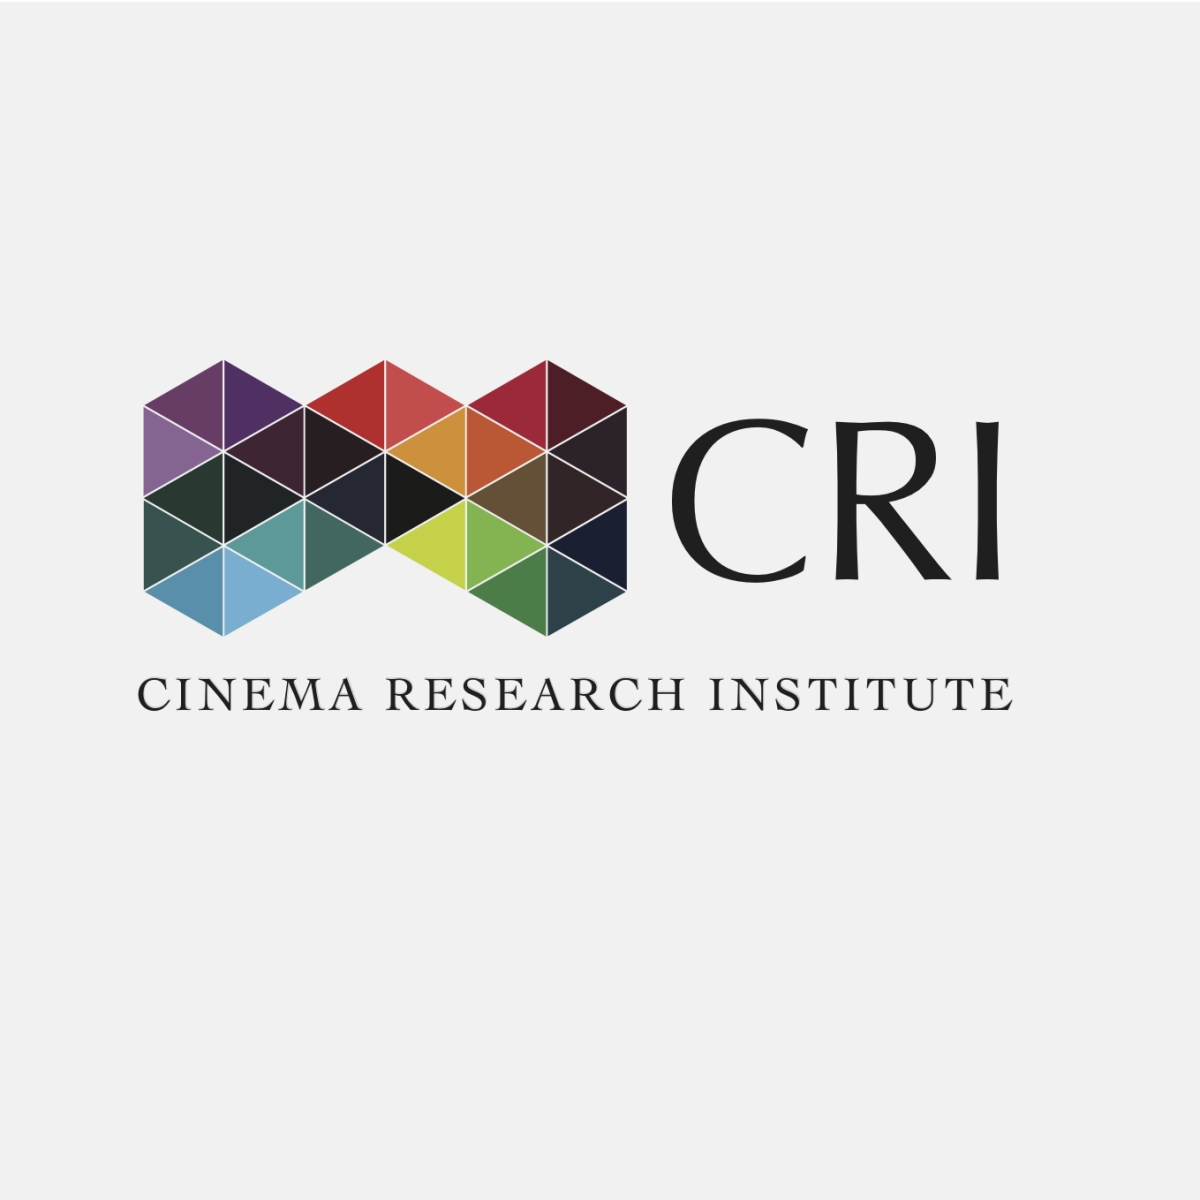 Cinema Research Institute (CRI)